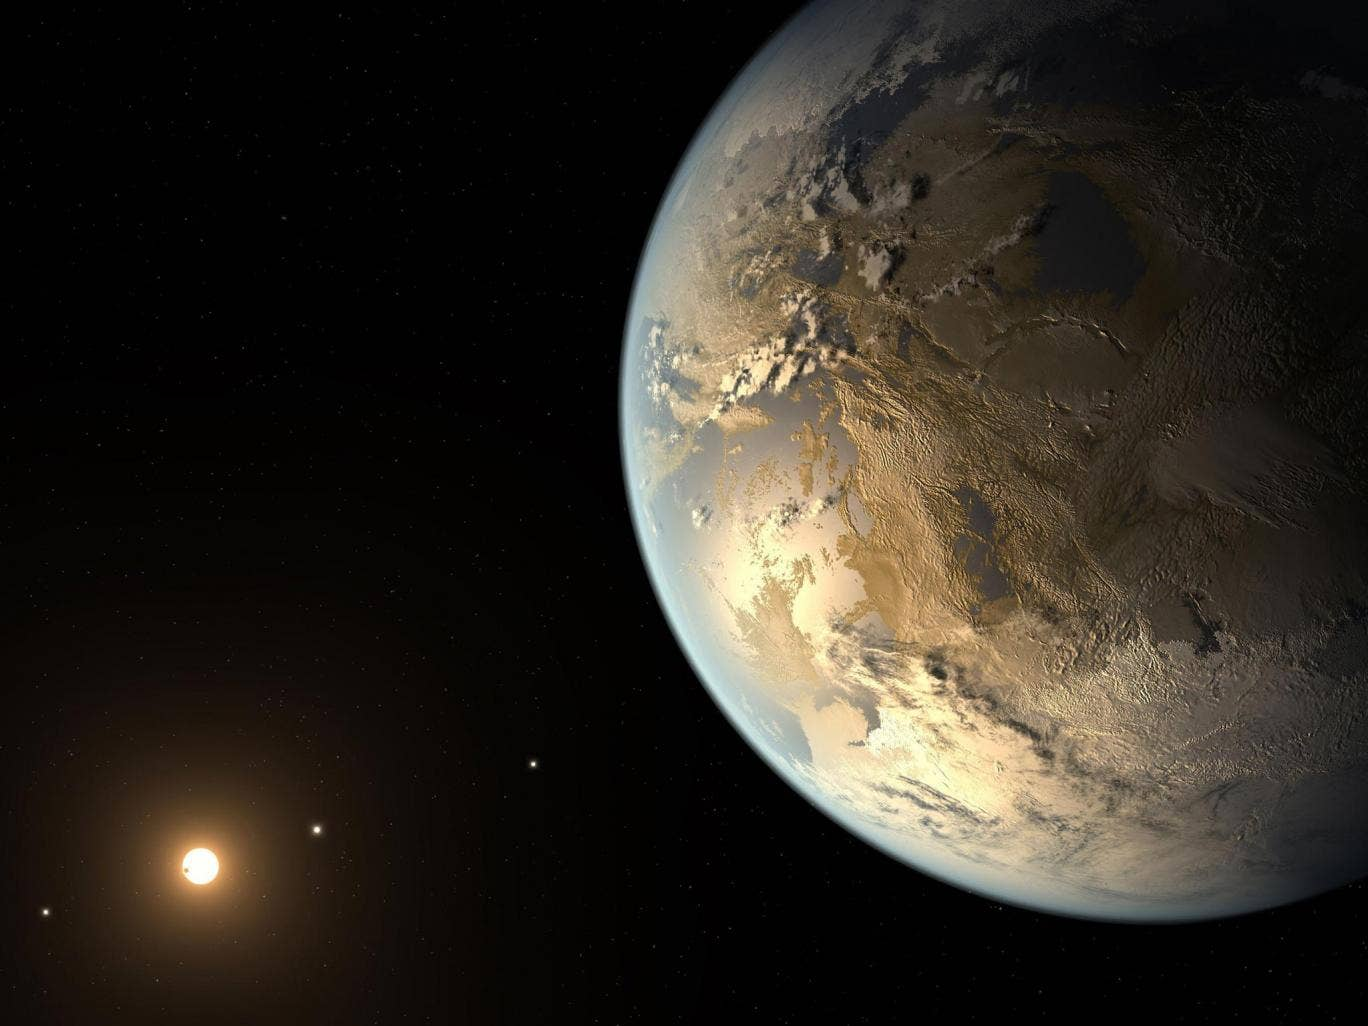 An artist's impression of Kepler-186f which may have conditions suitable to life